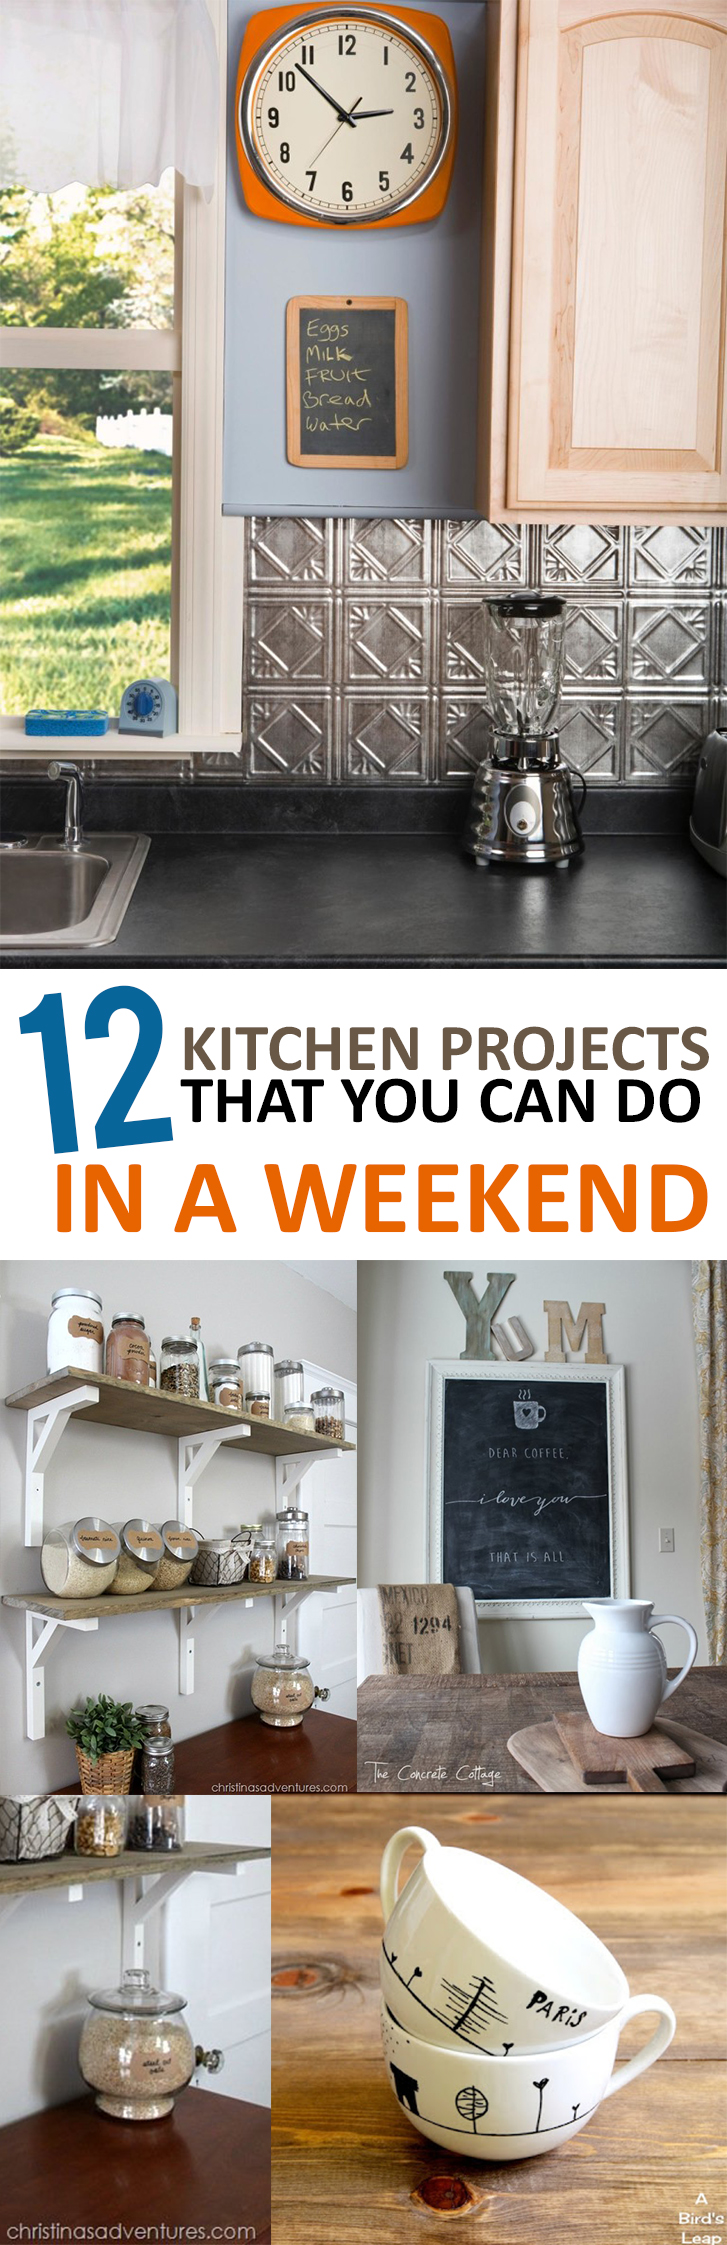 Kitchen Projects 12 Kitchen Projects That You Can Do In A Weekend